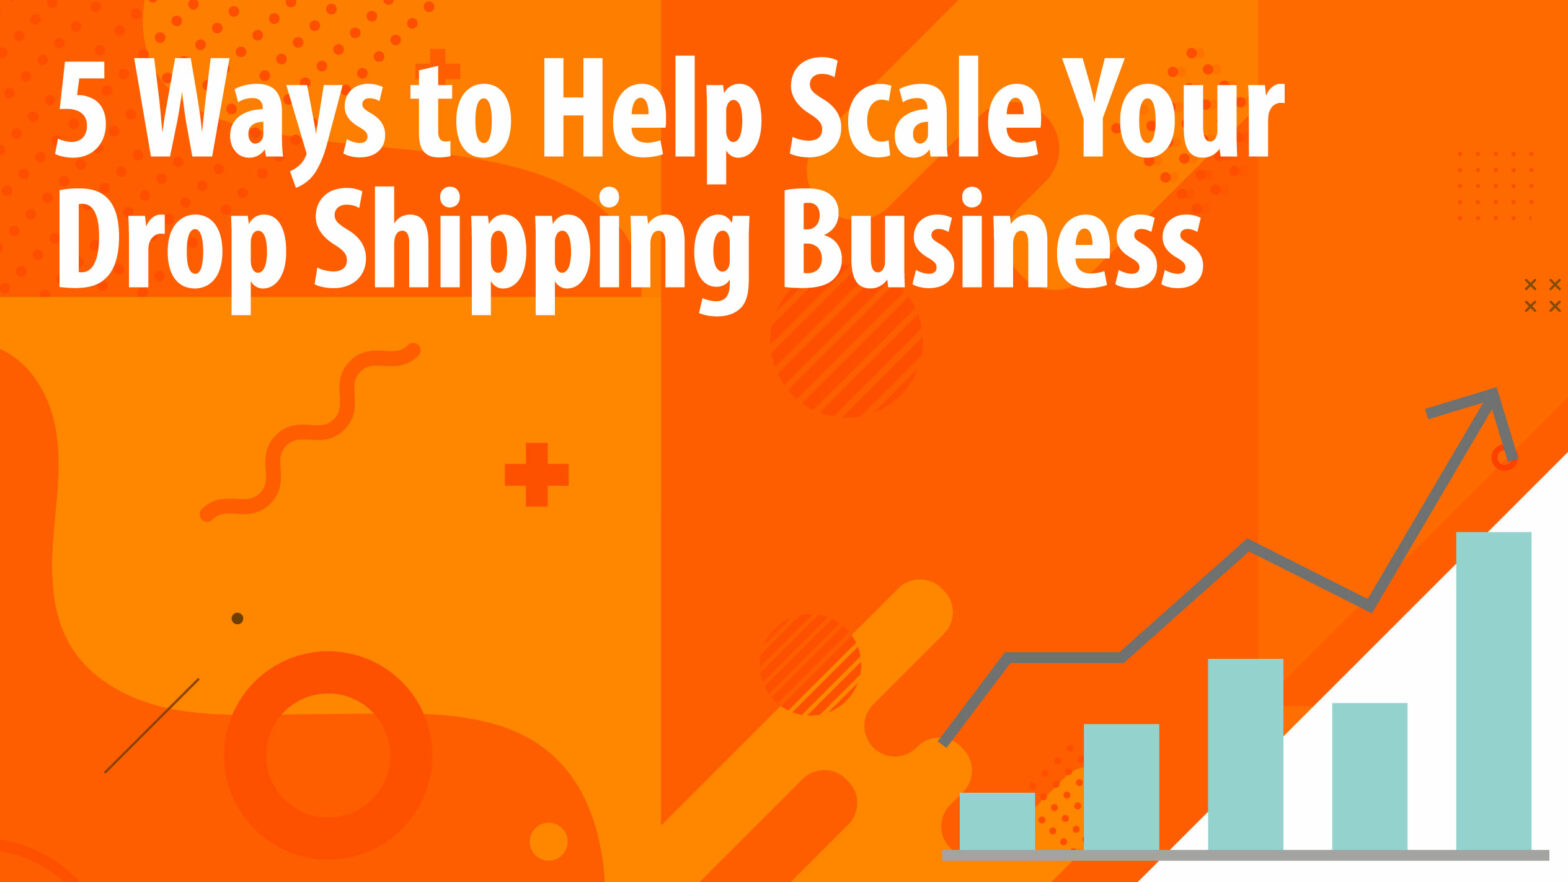 Scaling Drop Ship Business Article Header